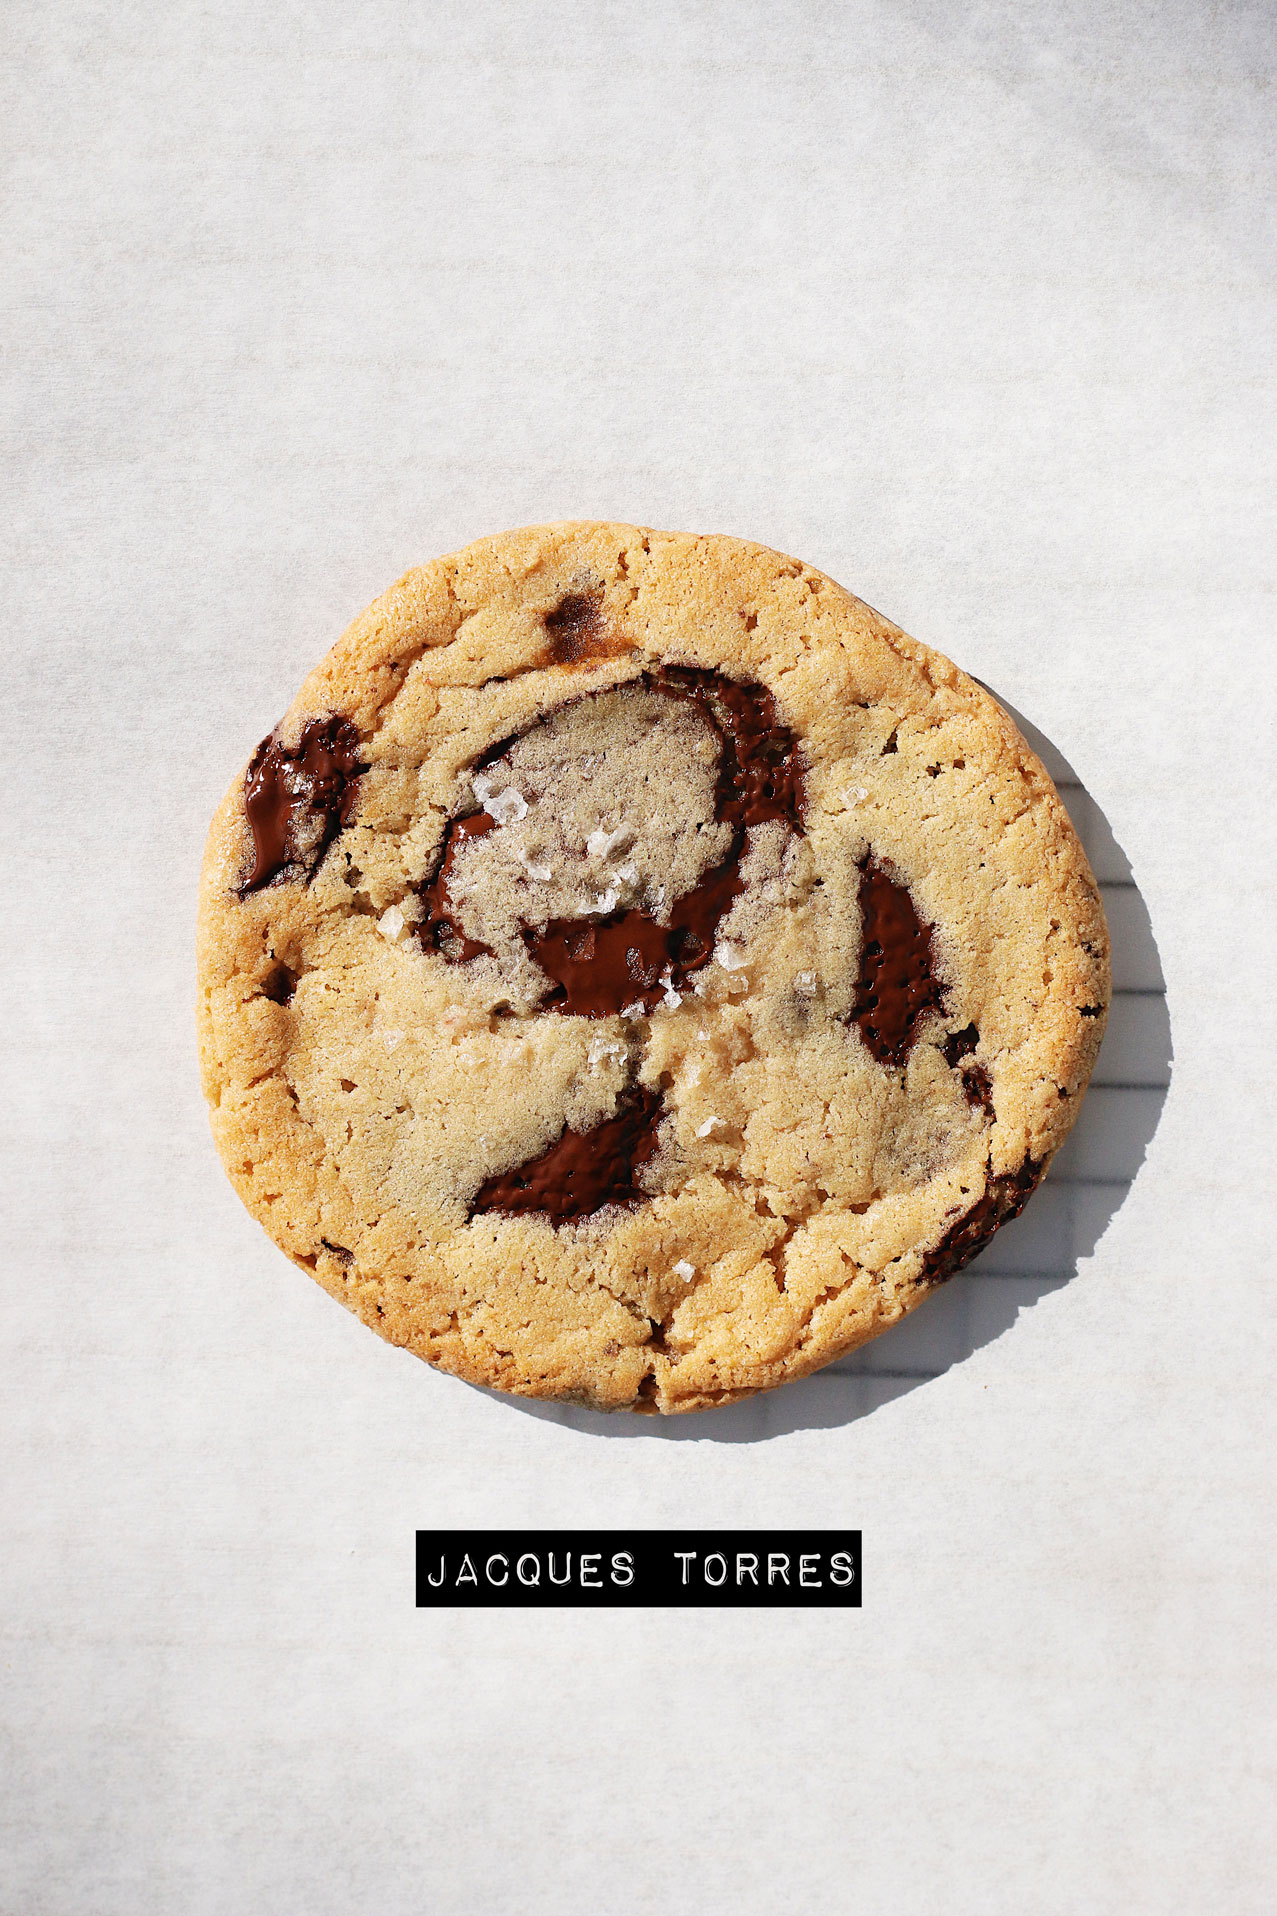 herbakinglab-best-chocolate-chip-cookie-bake-off-jacques-torres